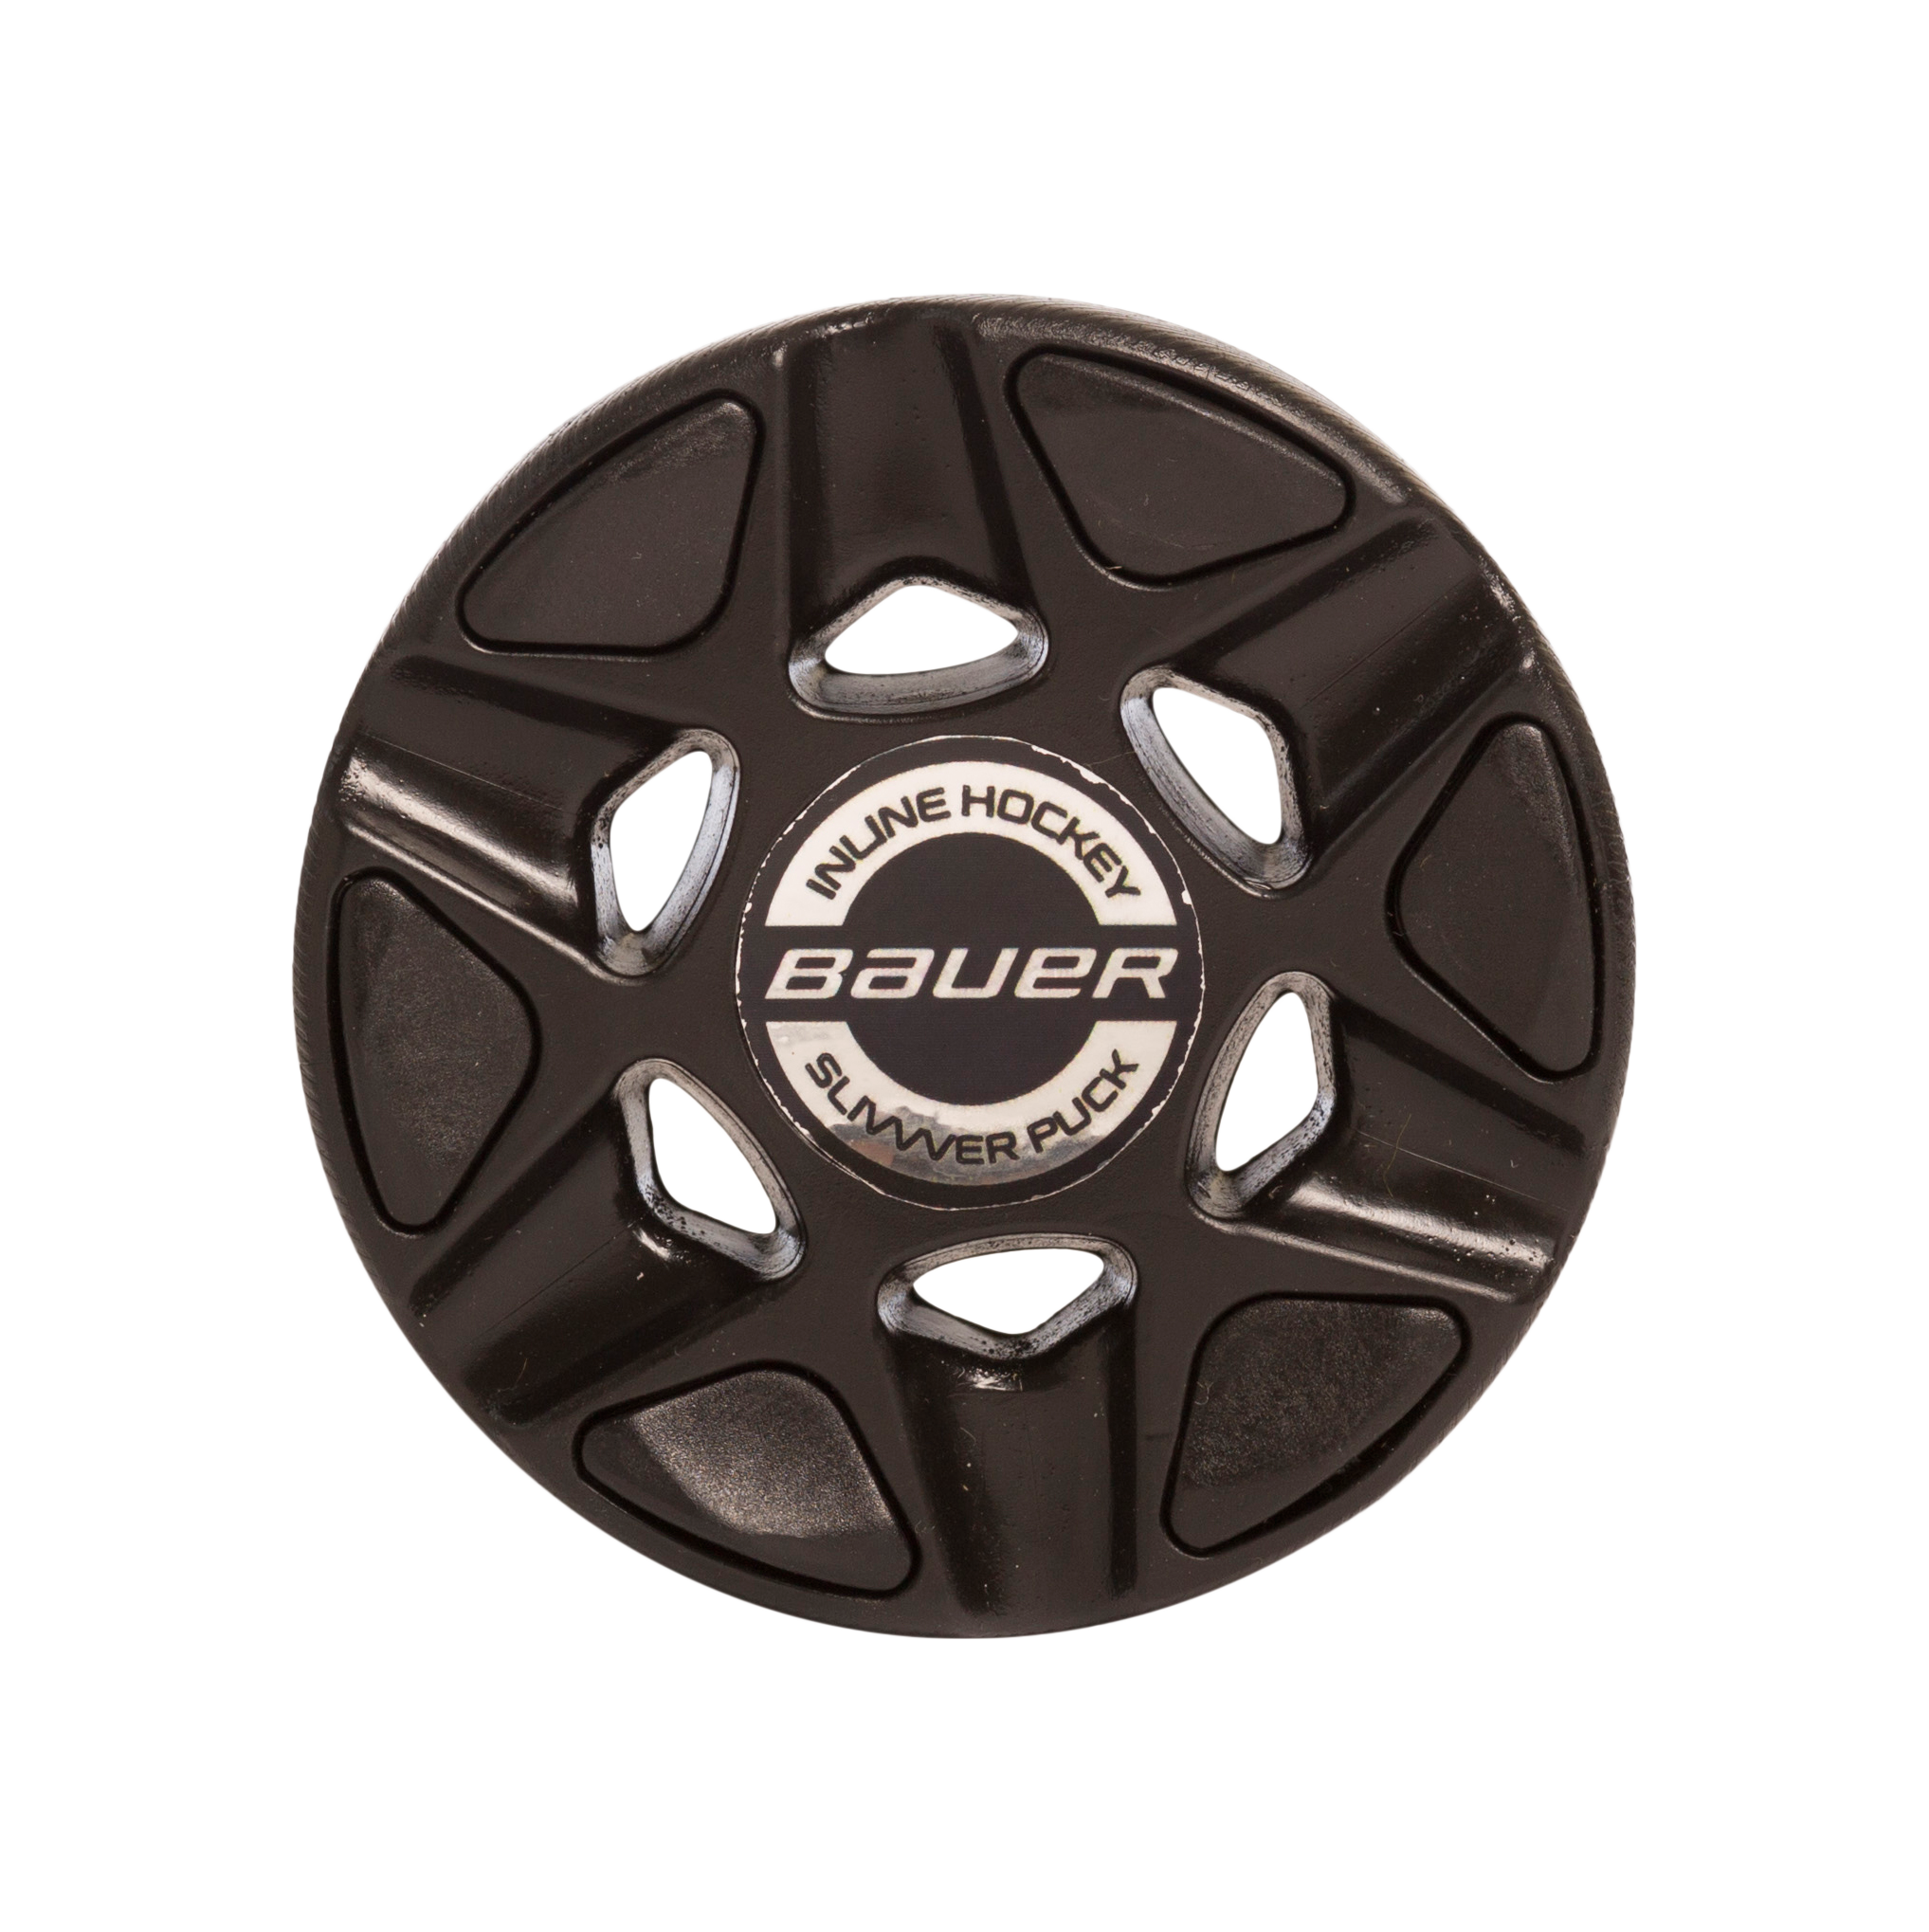 BAUER RH SLIVVVER PUCK (SINGLE),BLK,Размер M